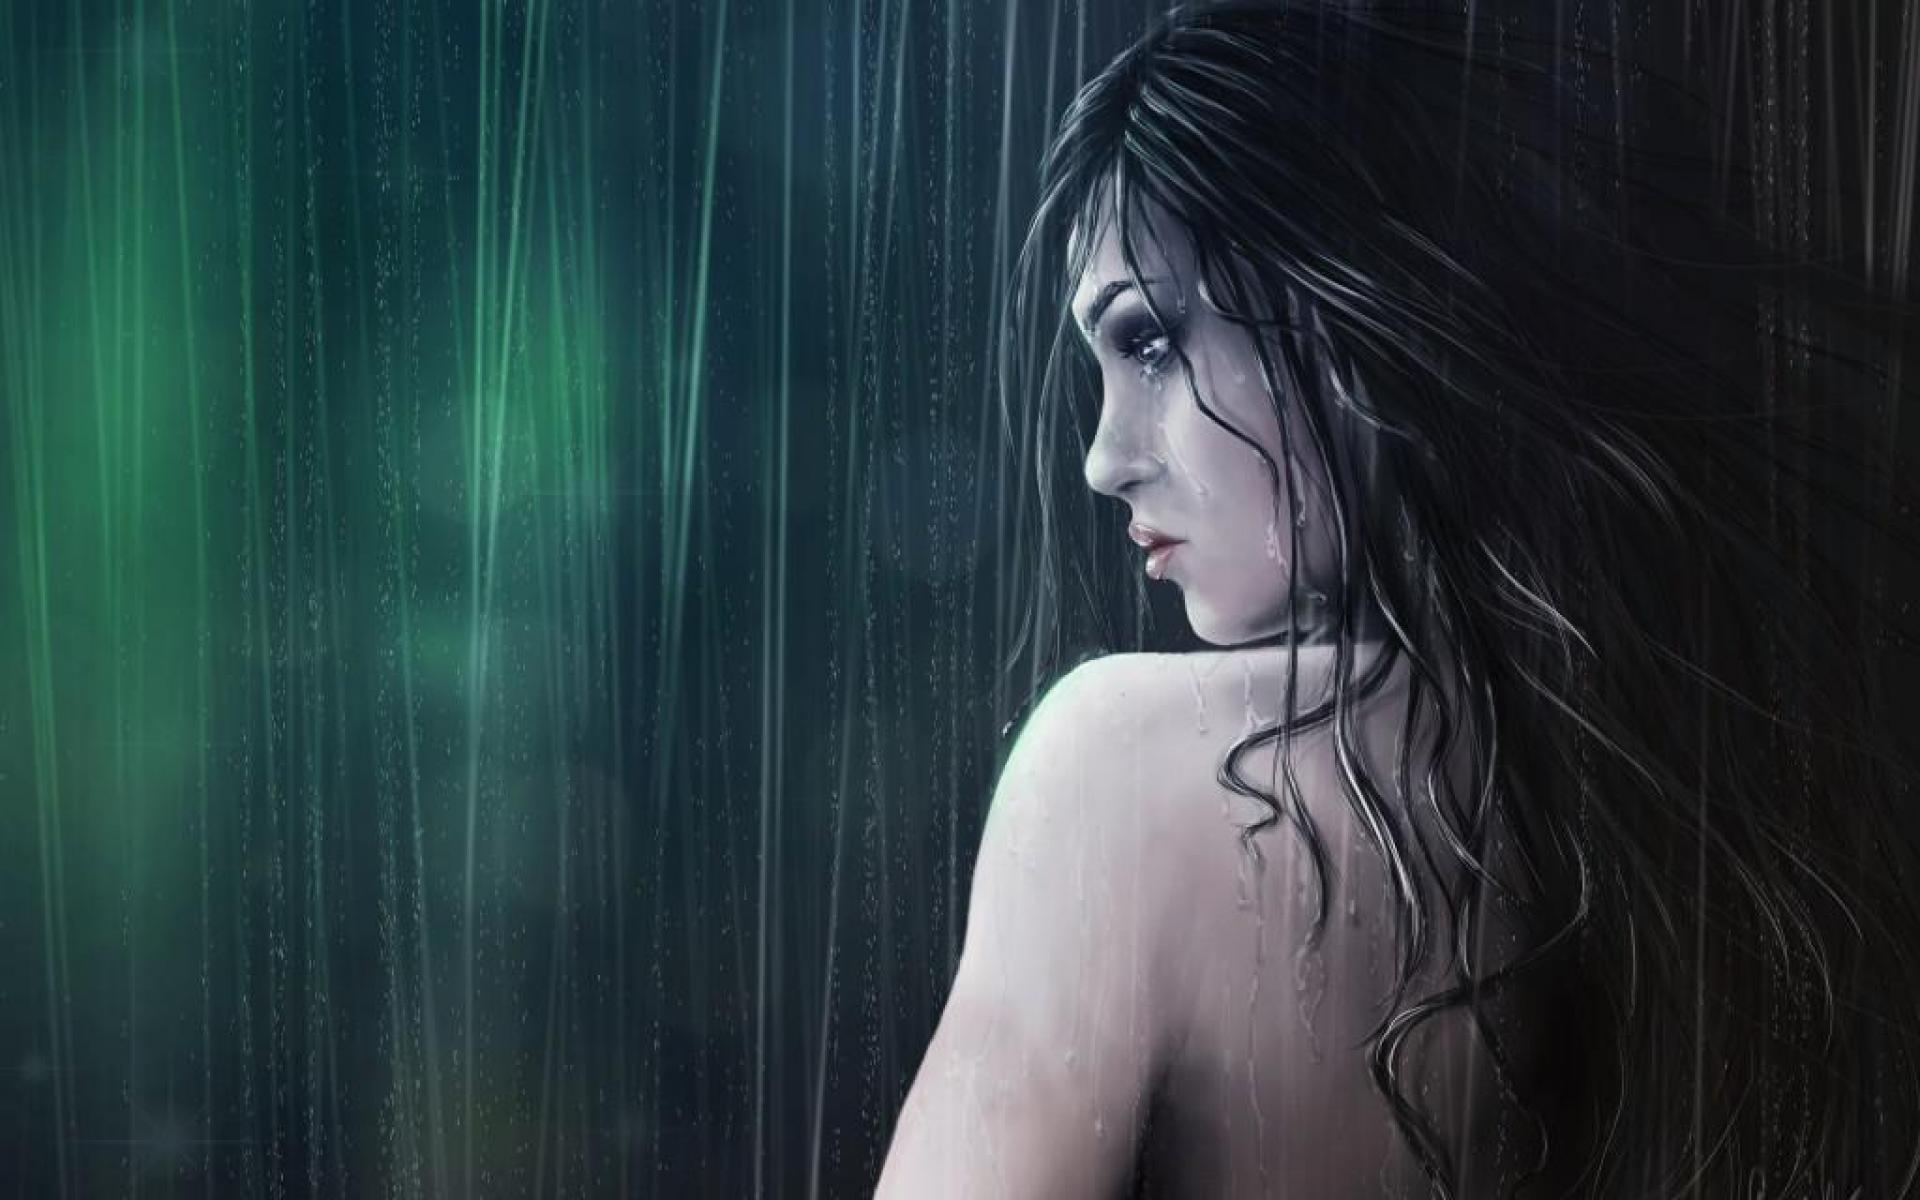 Cry in Rain - Wallpaper, High Definition, High Quality ...